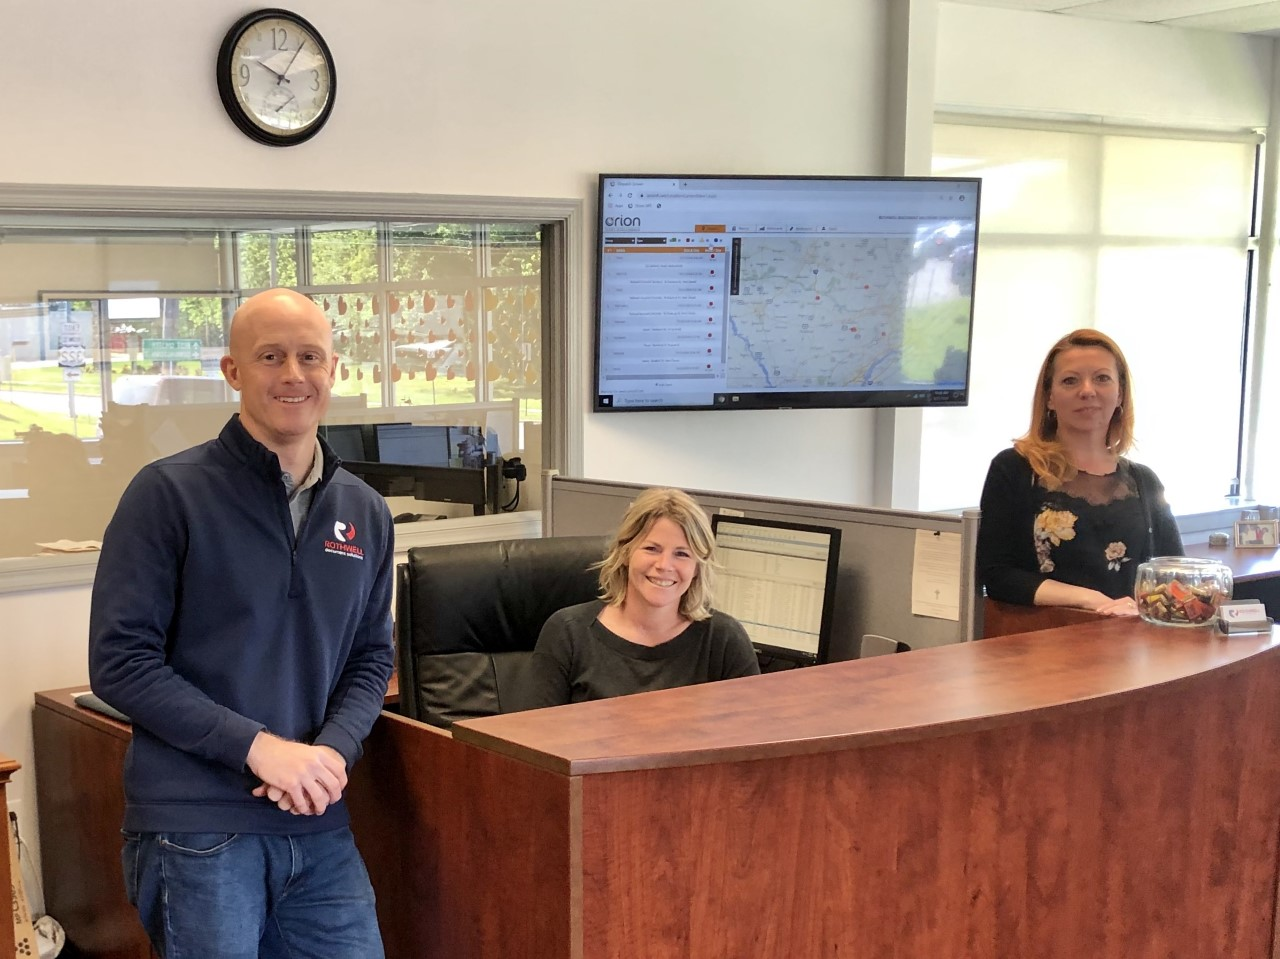 Products, Services of Rothwell Document Solutions in West Chester Evolve with Technology